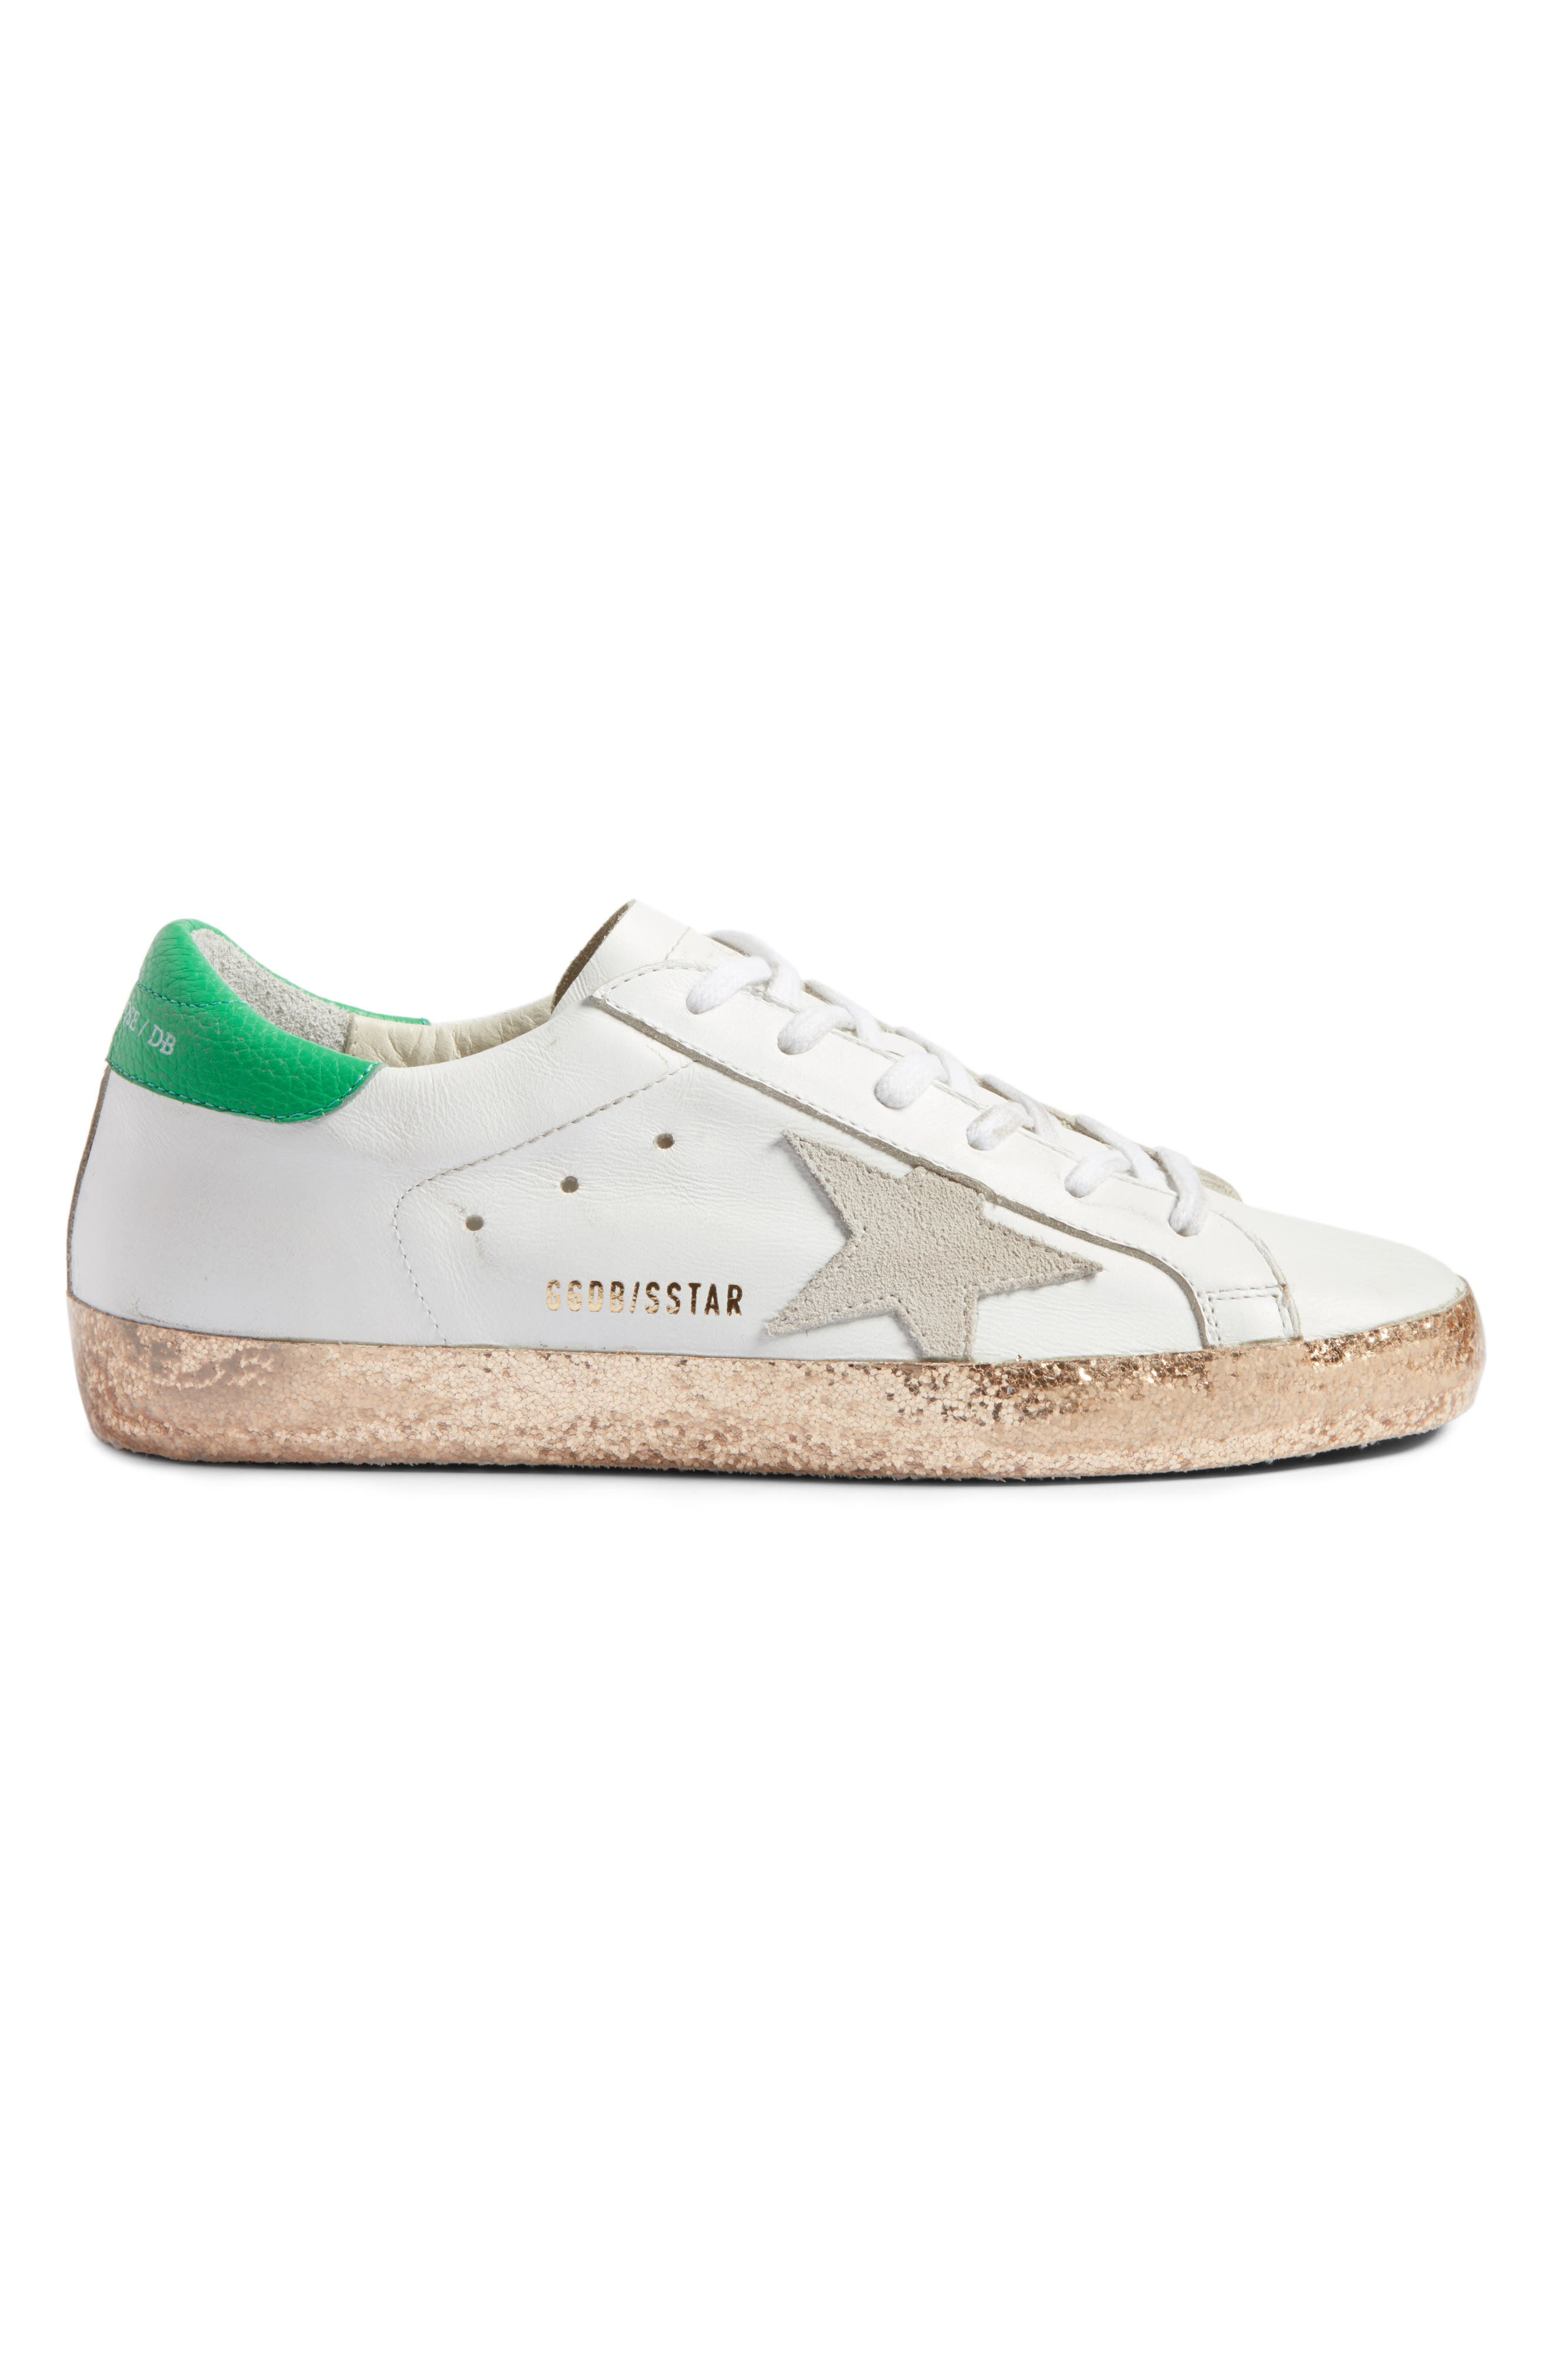 Superstar Low Top Sneaker,                             Alternate thumbnail 3, color,                             White Leather/ Gold